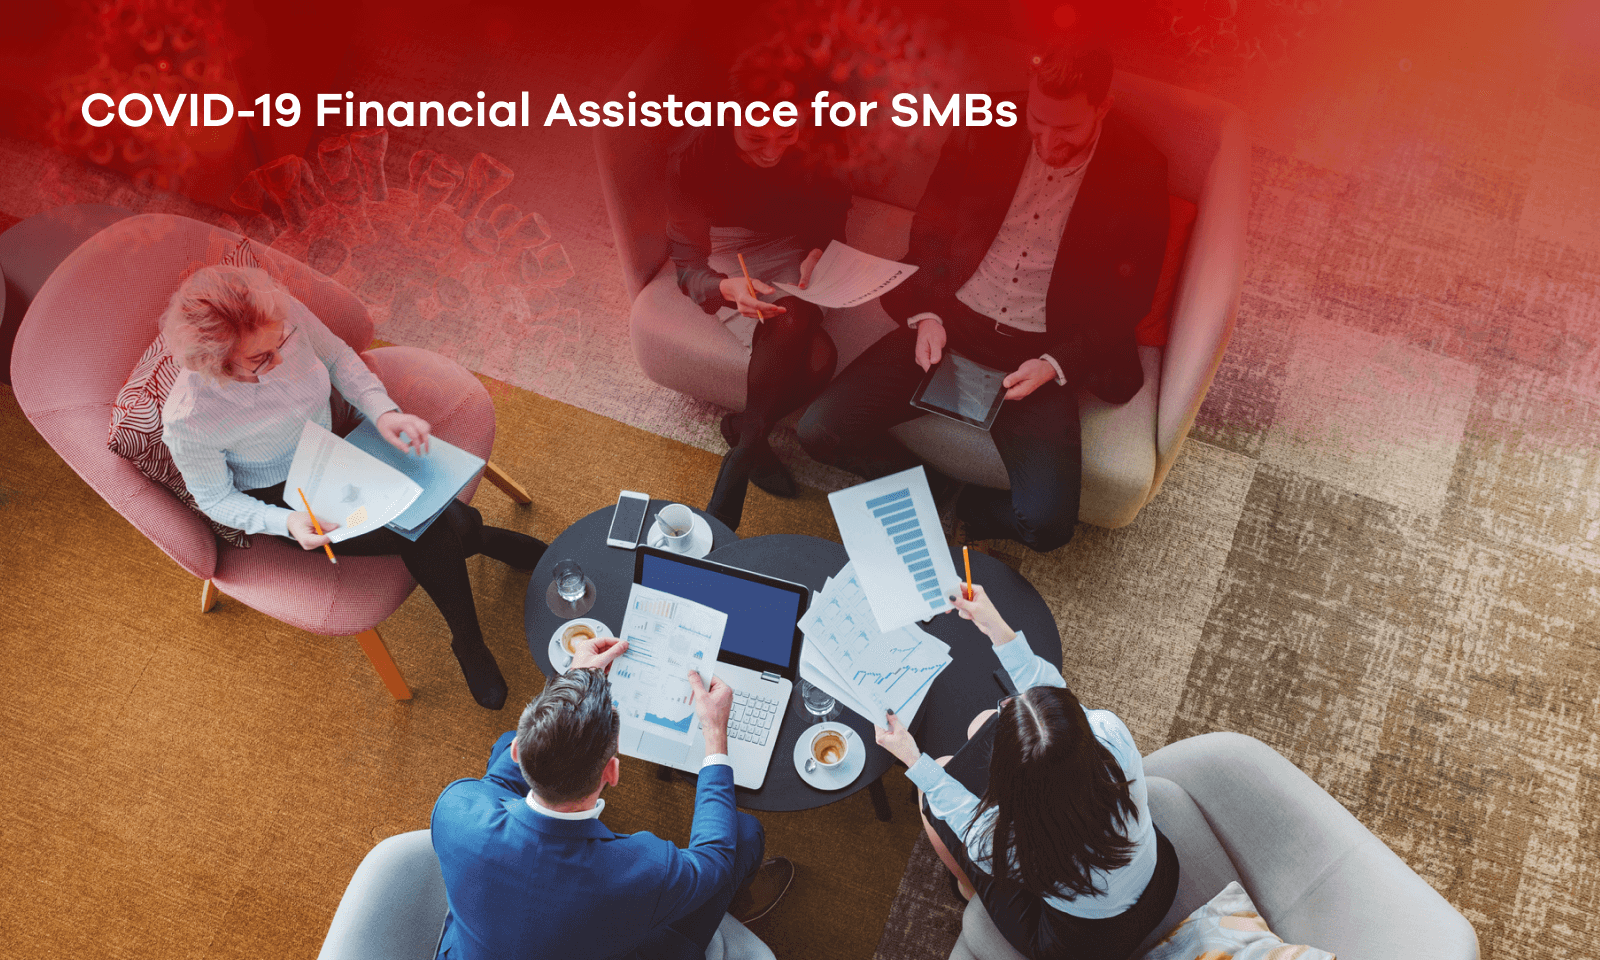 COVID-19: Financial Assistance for SMBs